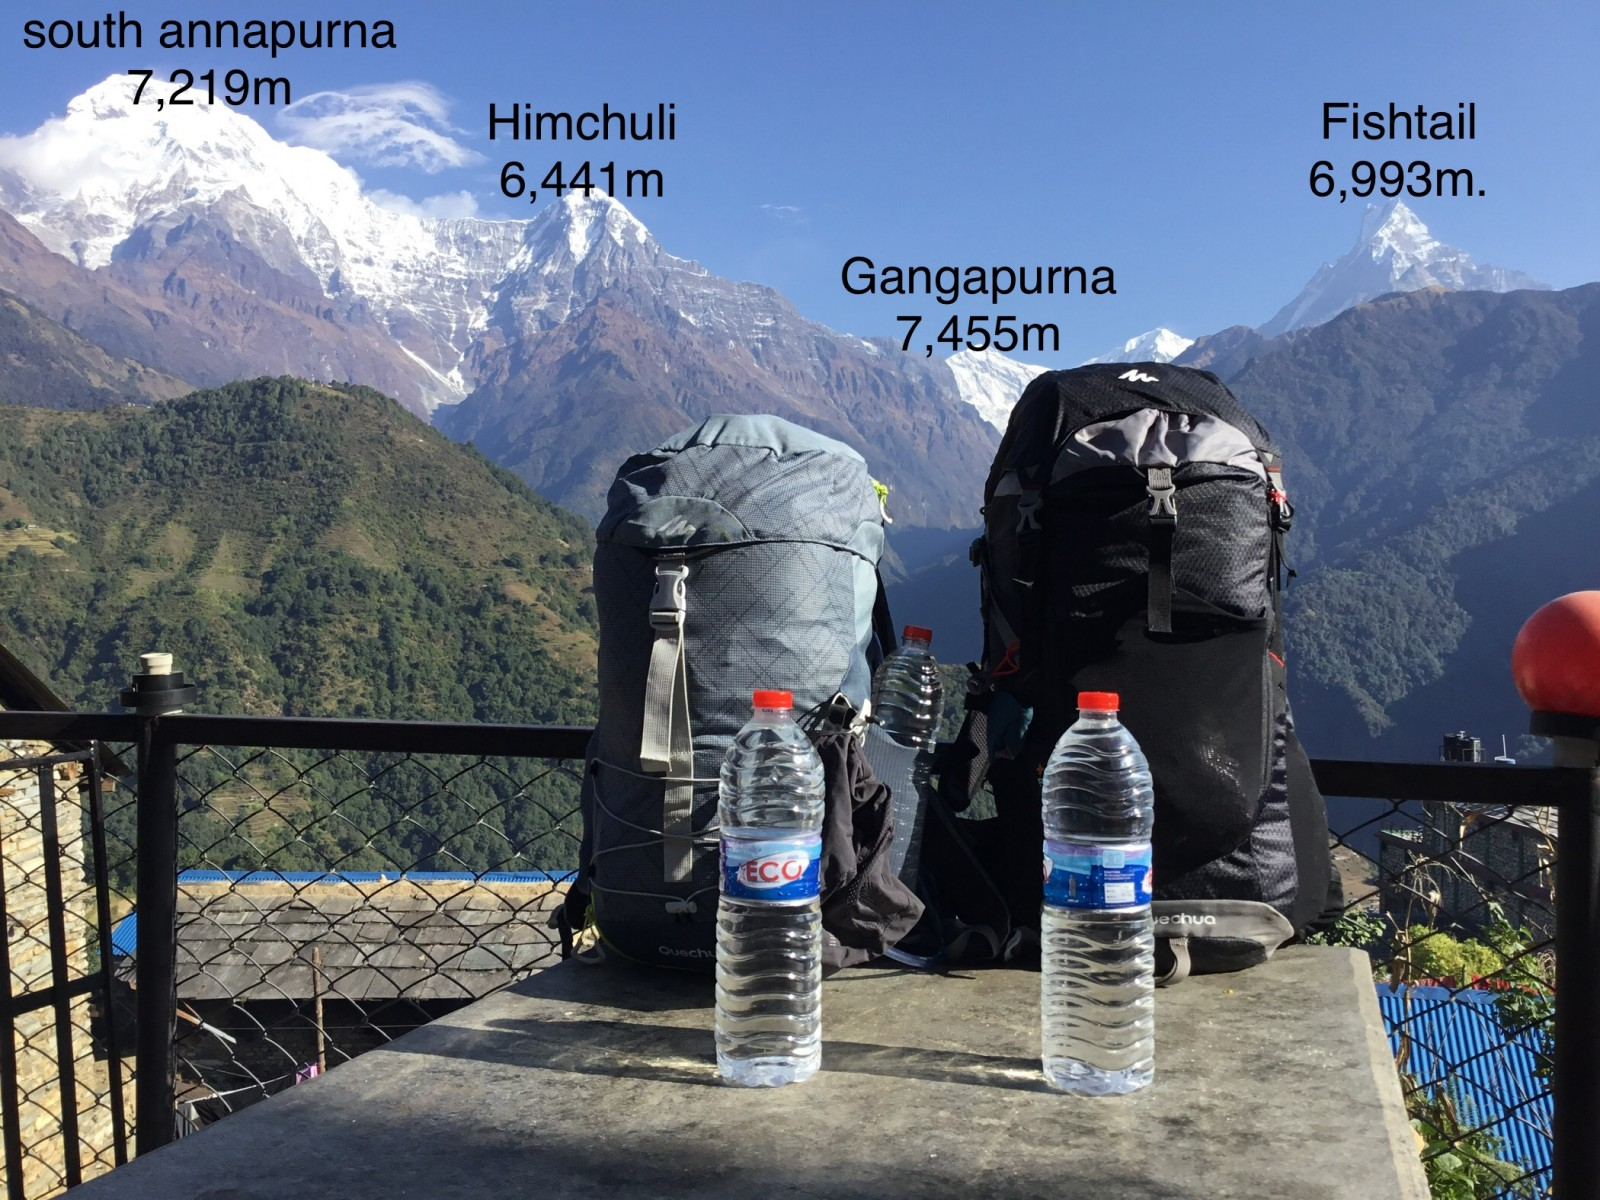 Annapurna Base Camp trek 7 days $605/-